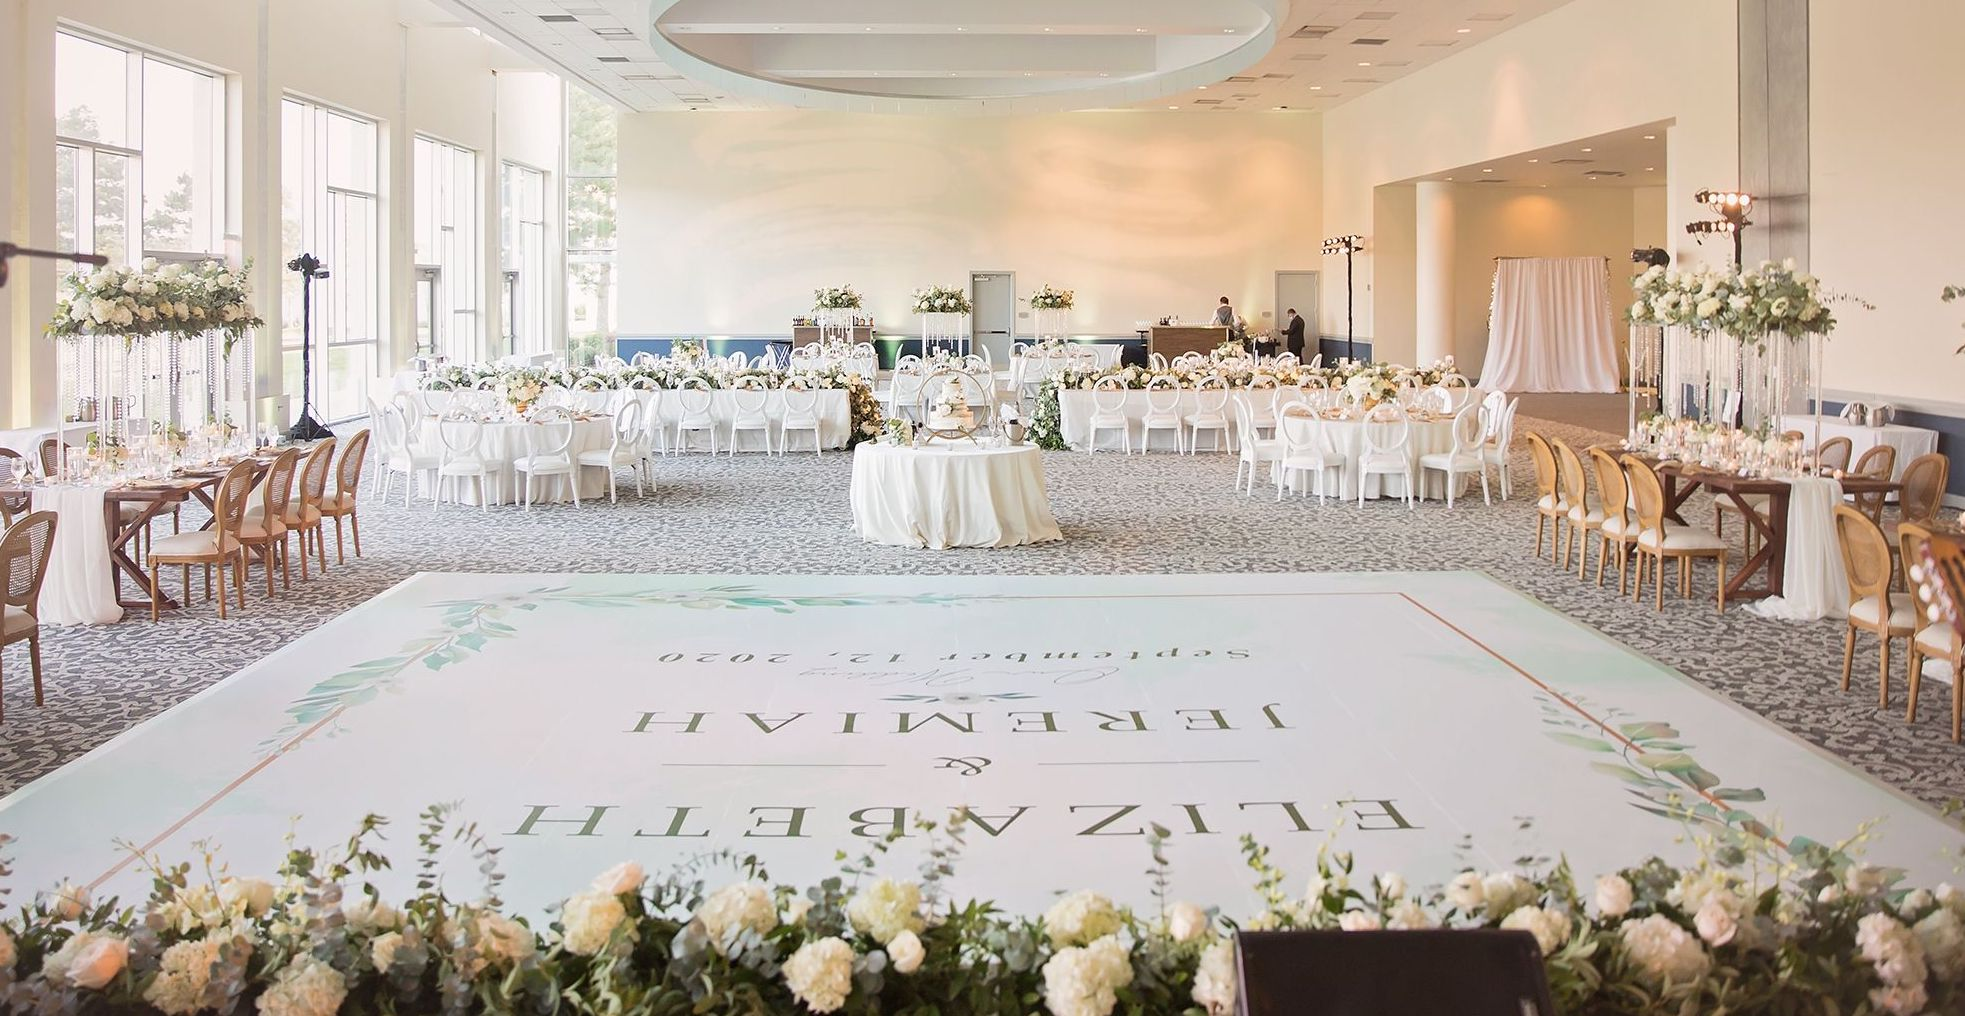 The Del Lago ballroom at the Margaritaville Resort, Lake Conroe is decorated in white rose and eucalyptus floral arrangements, off-white linens and a white dance floor with a personalized decal of the bride and groom's name.